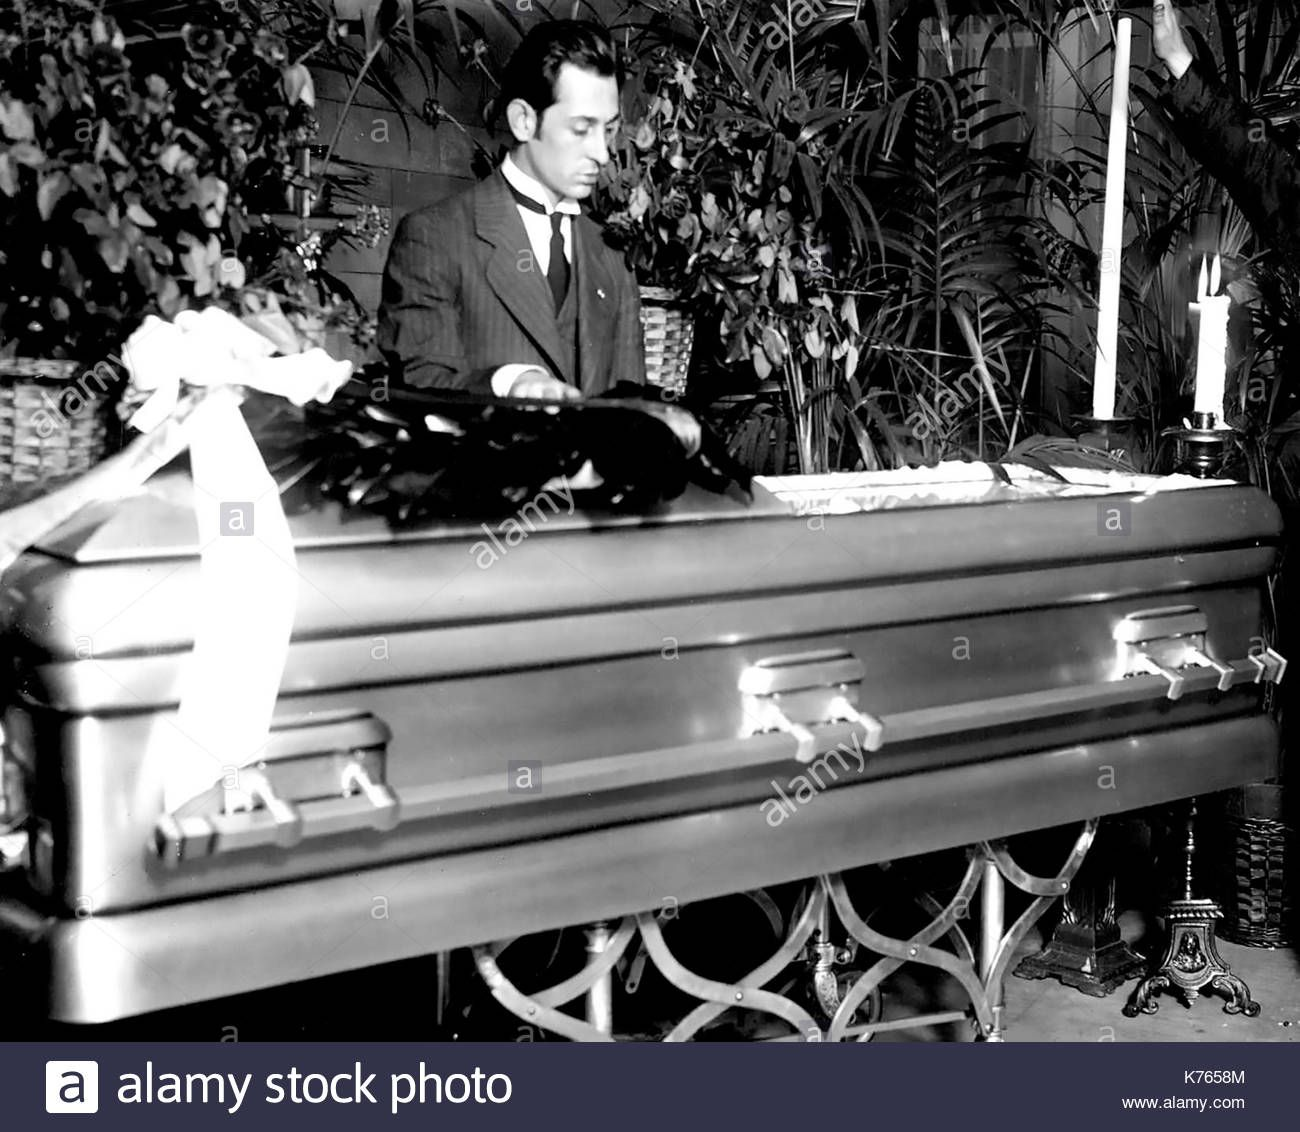 Rudolph Valentino Funeral Frank Campbell Funeral Home New York City August 1926 Via Alamy Stock Photos Rudolph Valentino Funeral Photo